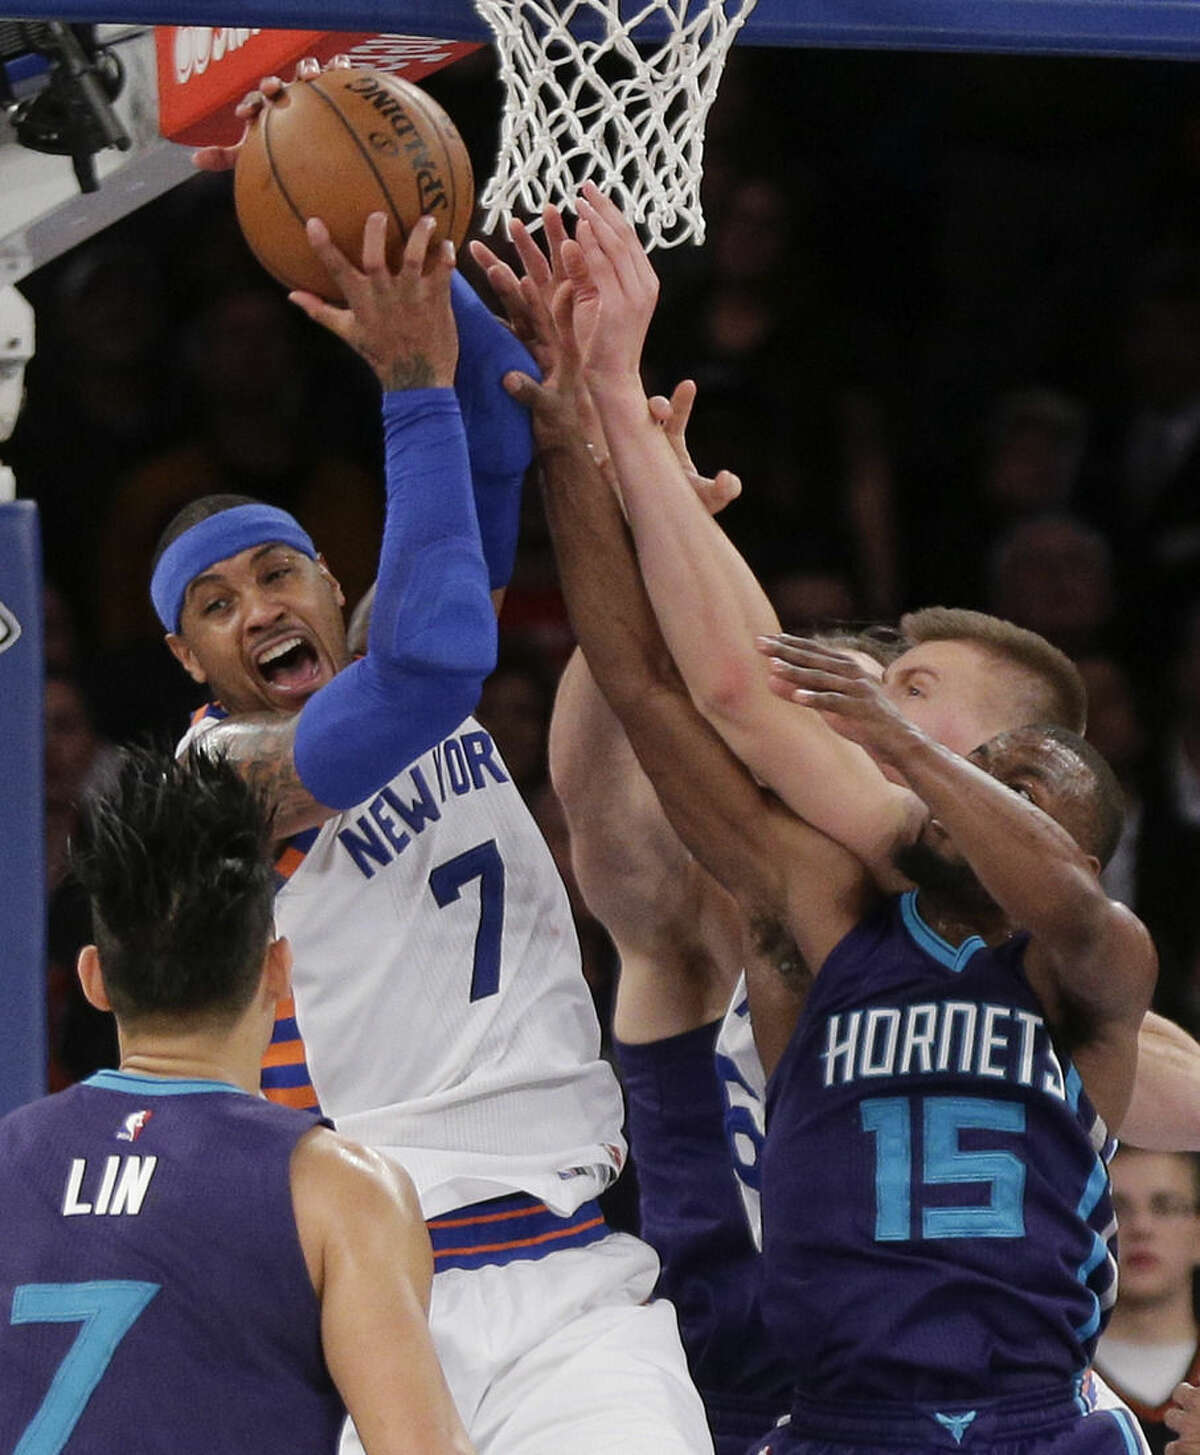 New York Knicks forward Carmelo Anthony (7) grabs a rebound against Charlotte Hornets guard Kemba Walker (15) during the fourth quarter of an NBA basketball game, Tuesday, Nov. 17, 2015, in New York. The Knicks won 102-94. (AP Photo/Julie Jacobson)